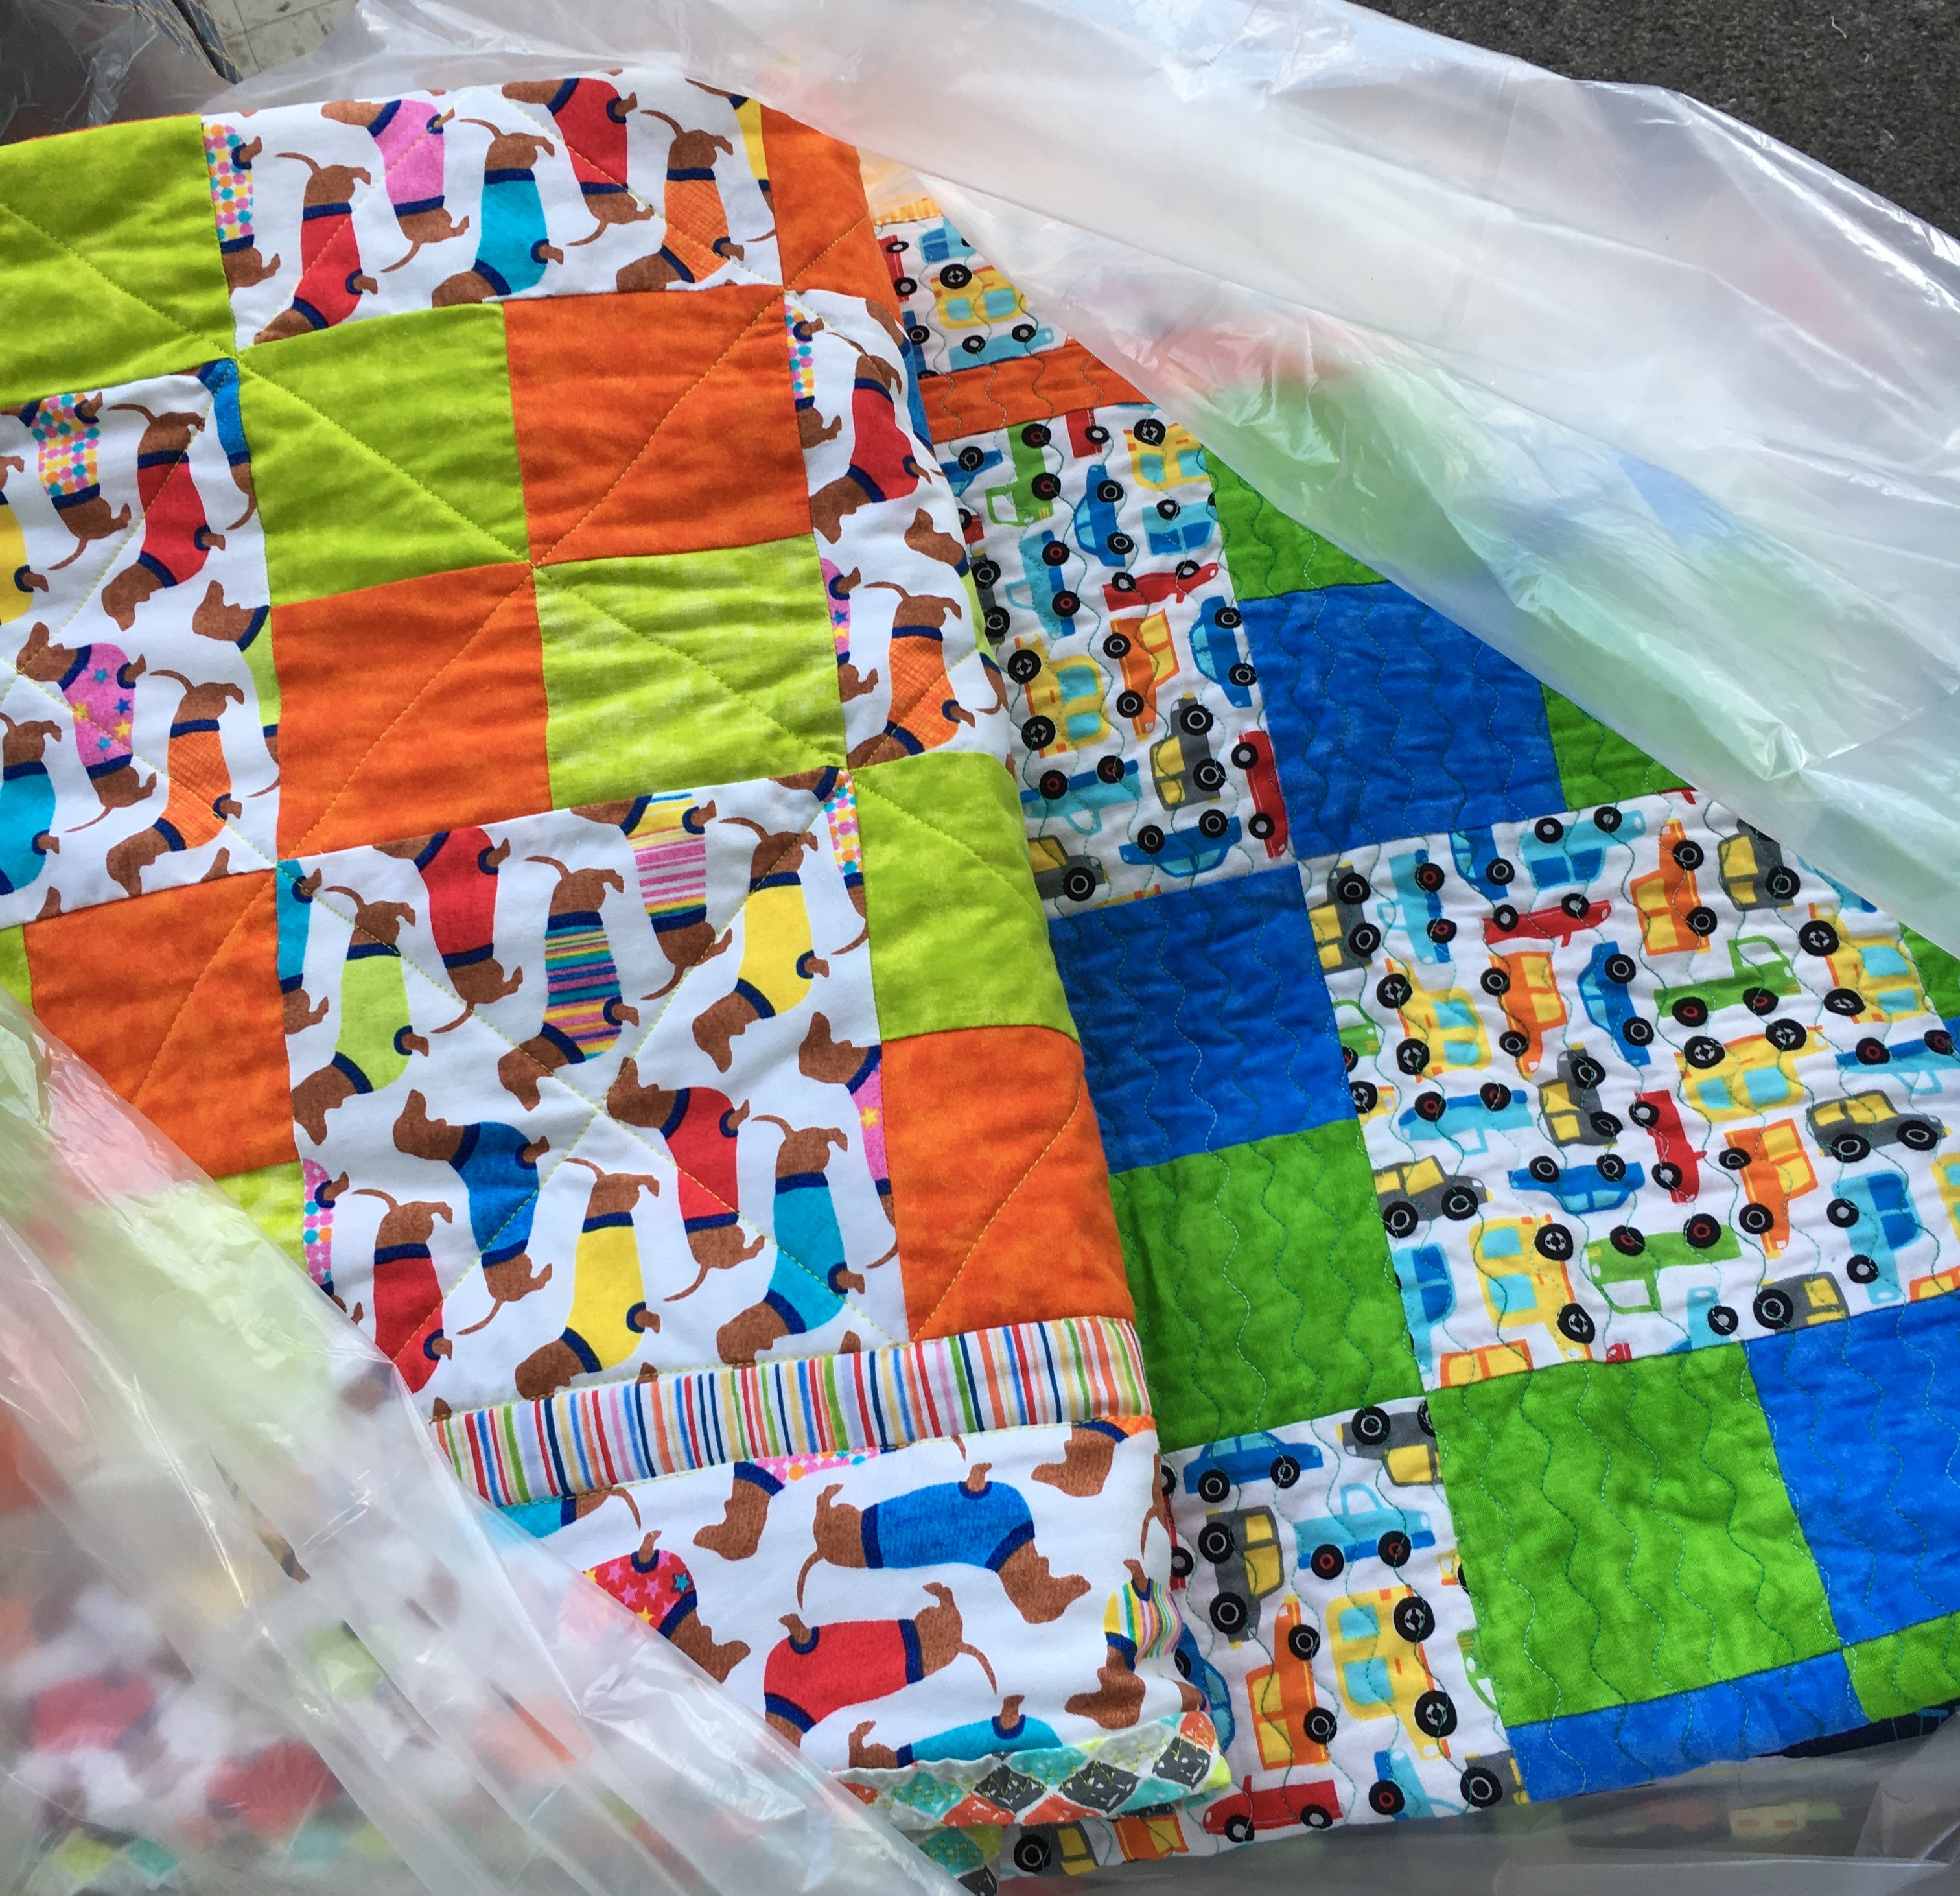 Falls township of bucks county pa appreciates quilts for kids